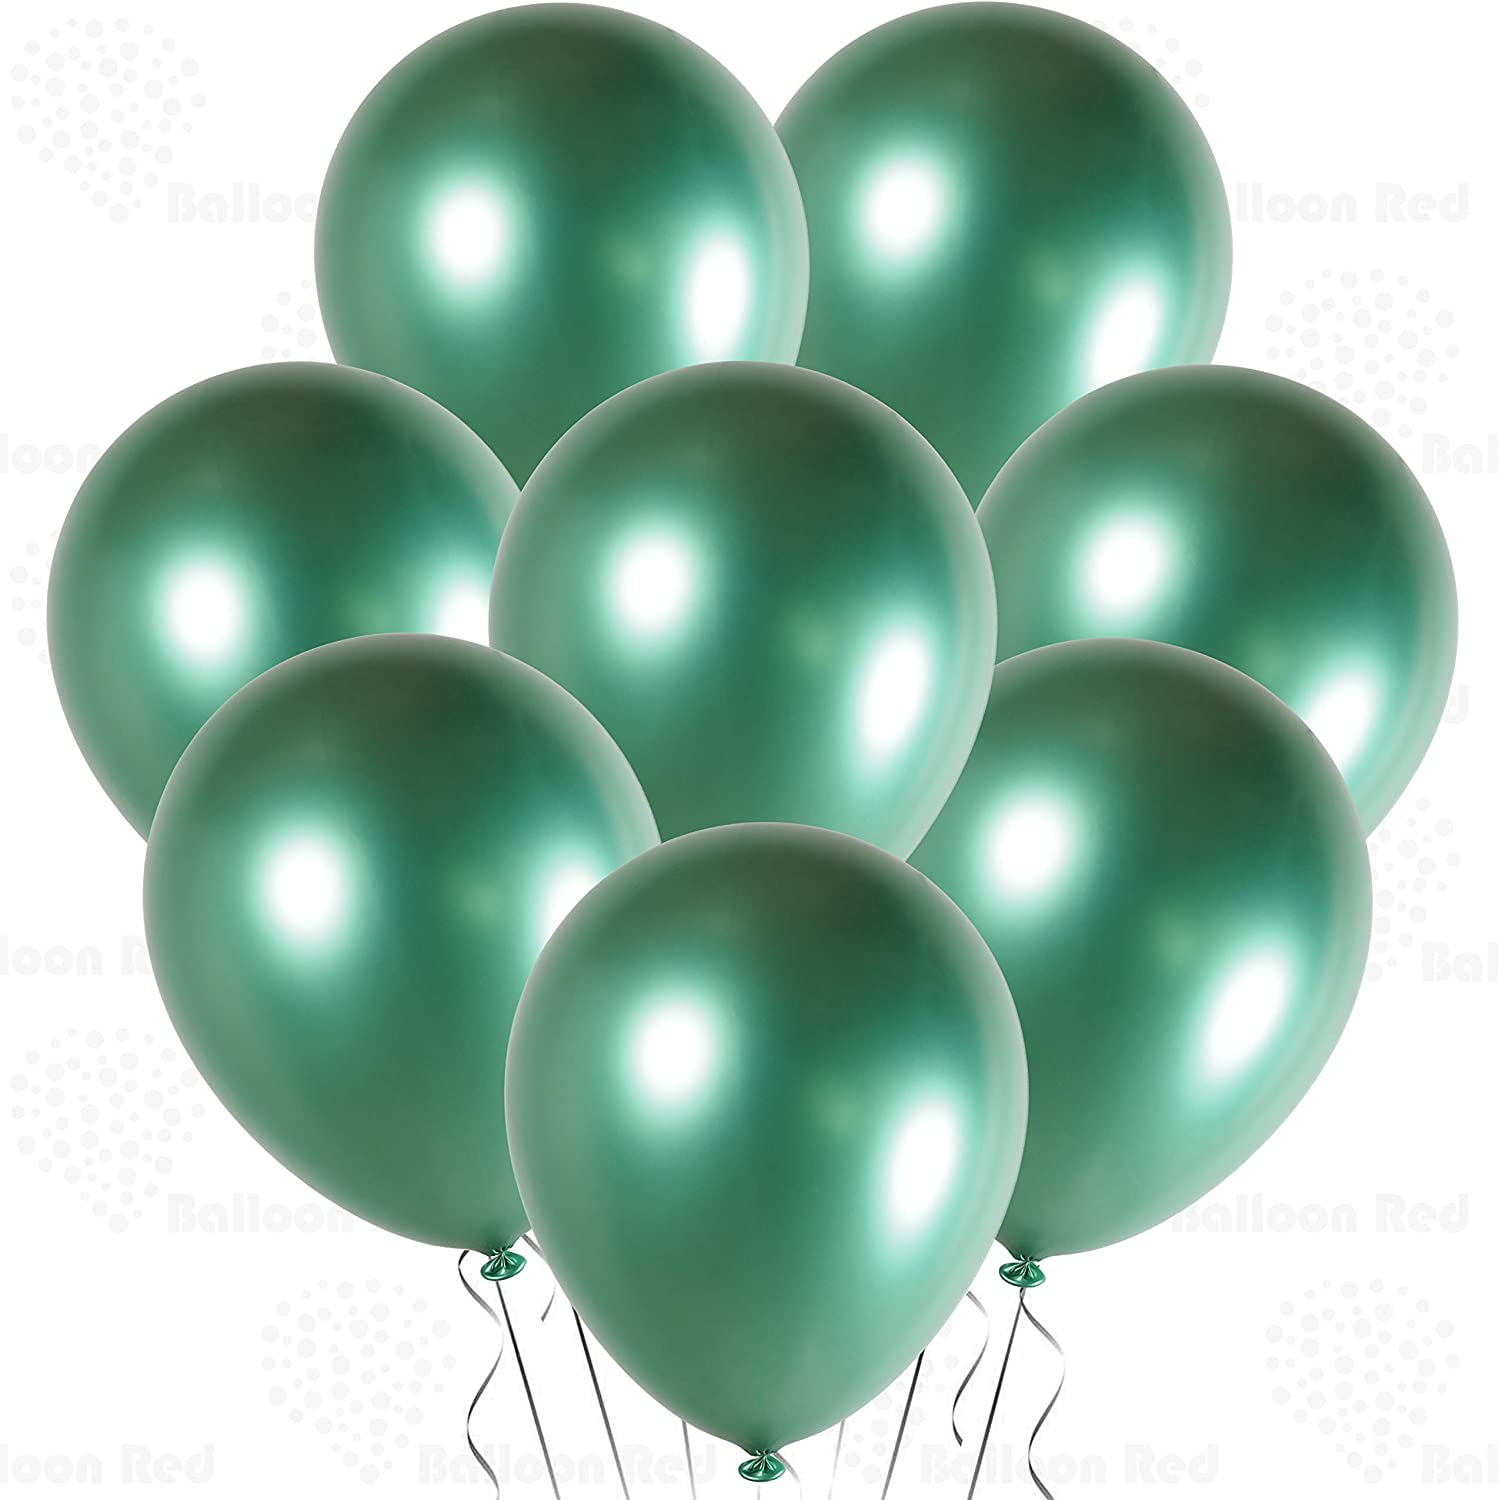 """24 Latex Balloons 12/"""" When Inflated Solid Colors Forest Green"""